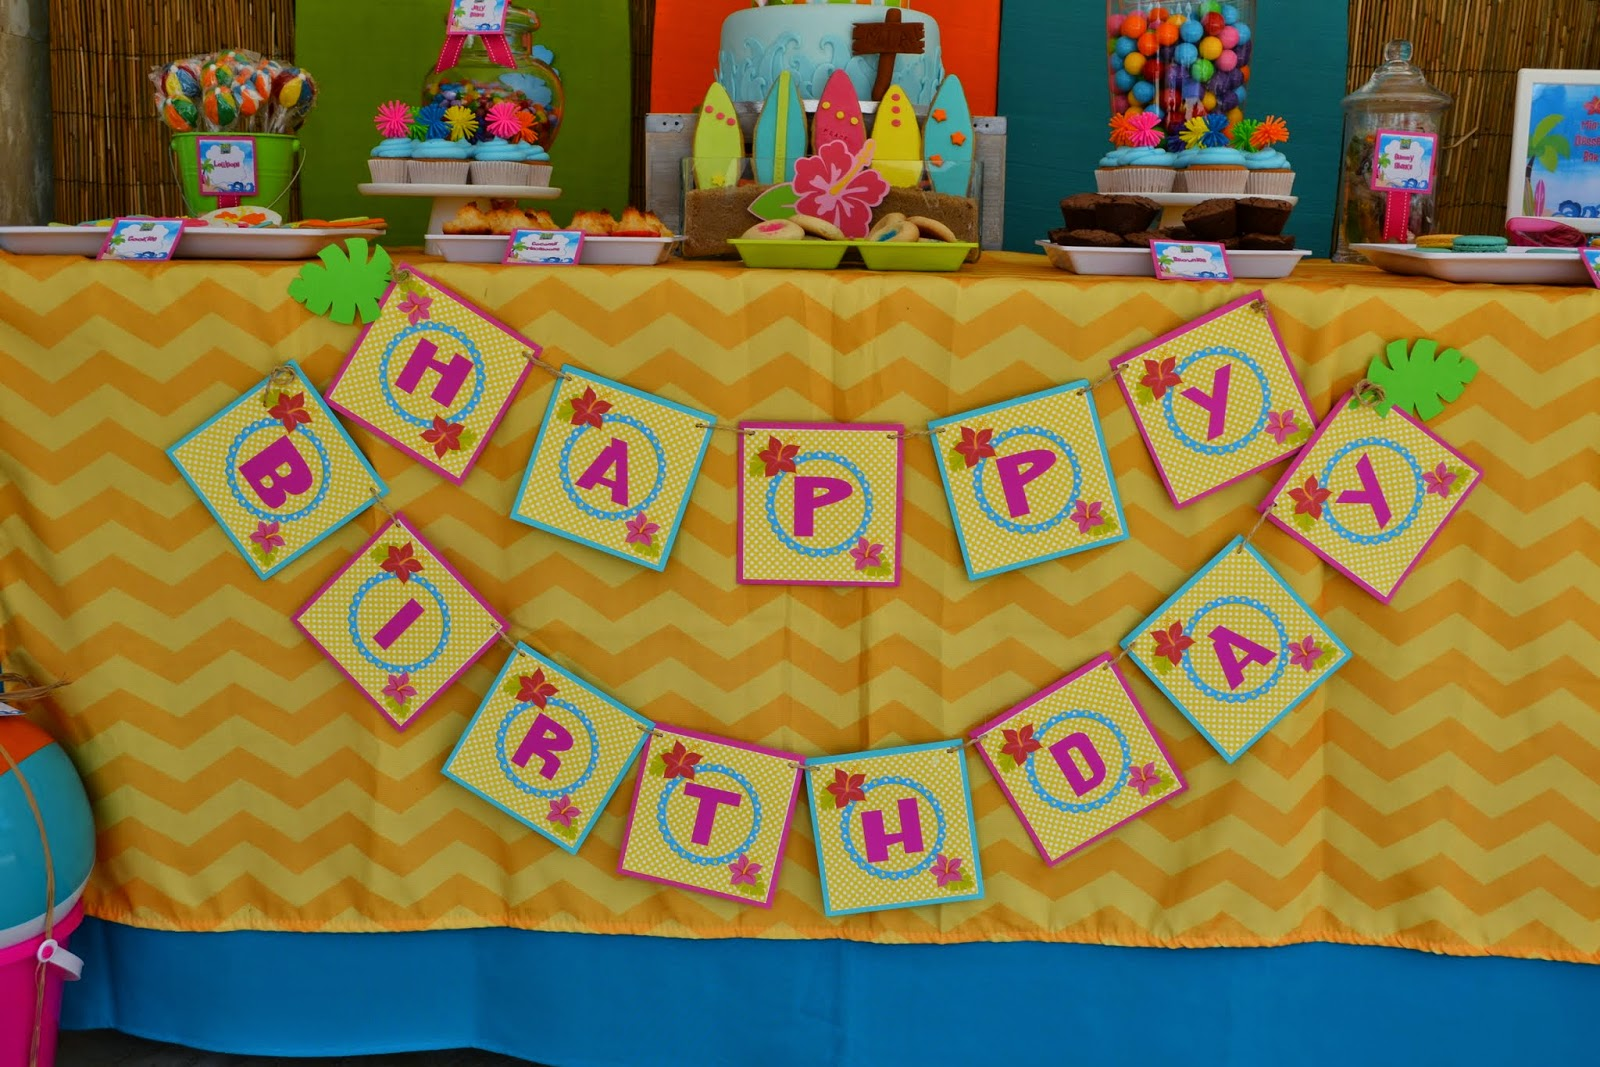 Teen Beach Movie Birthday Party - Birthday Party Ideas ...